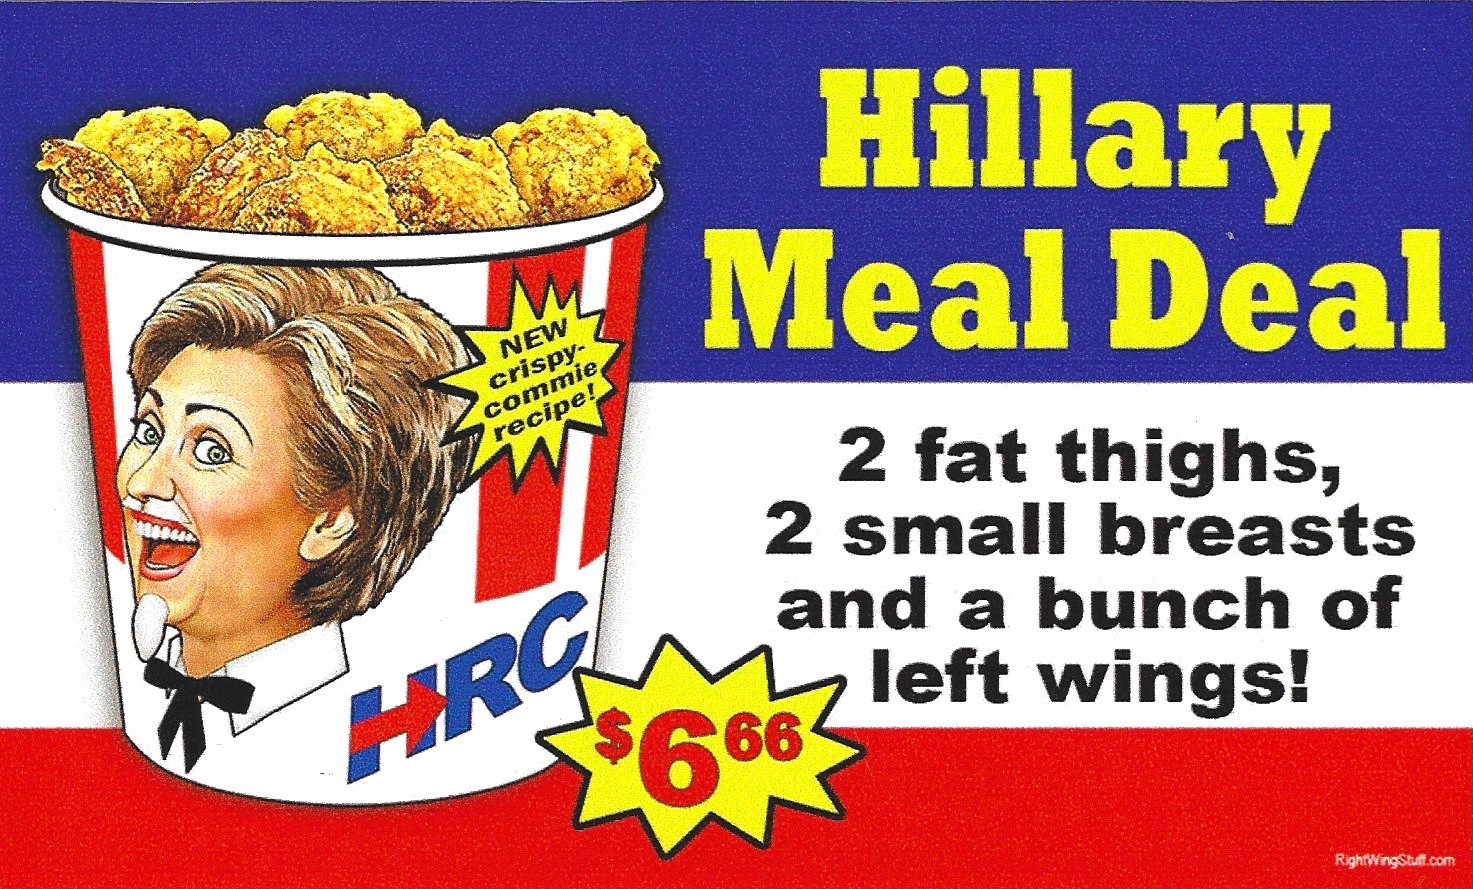 Hillary Meal Deal